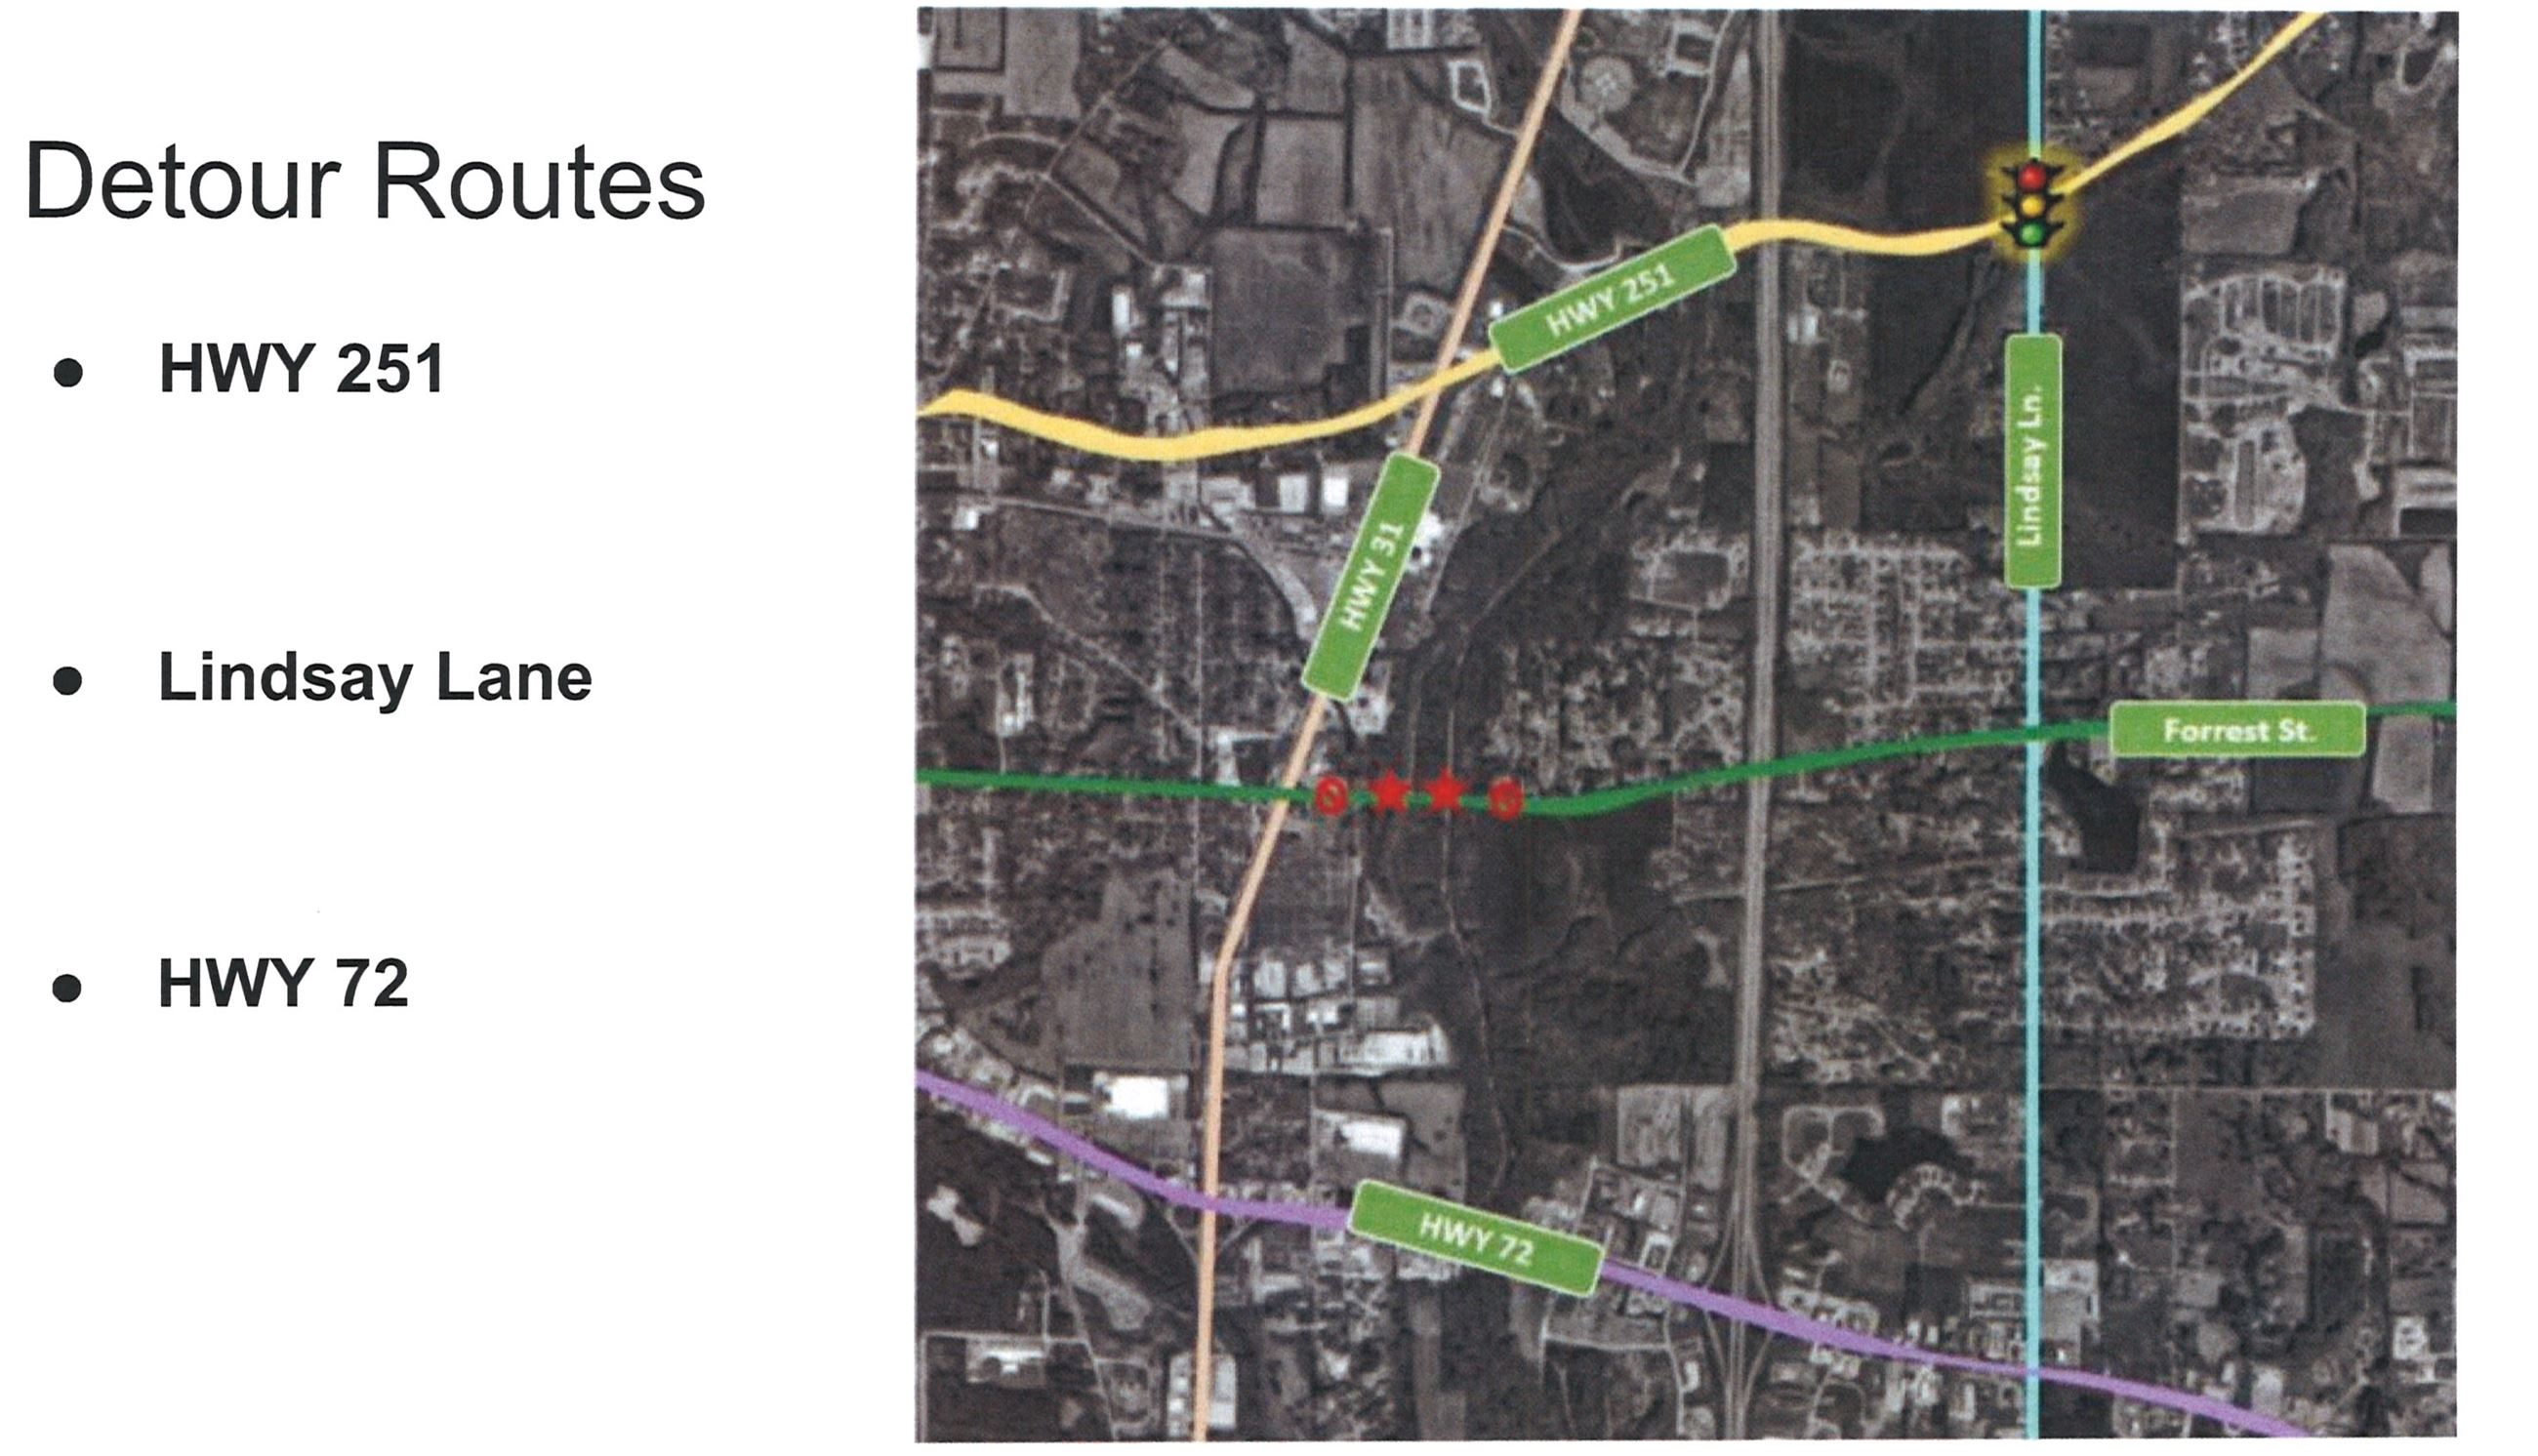 Detour routes for Forrest Street closure